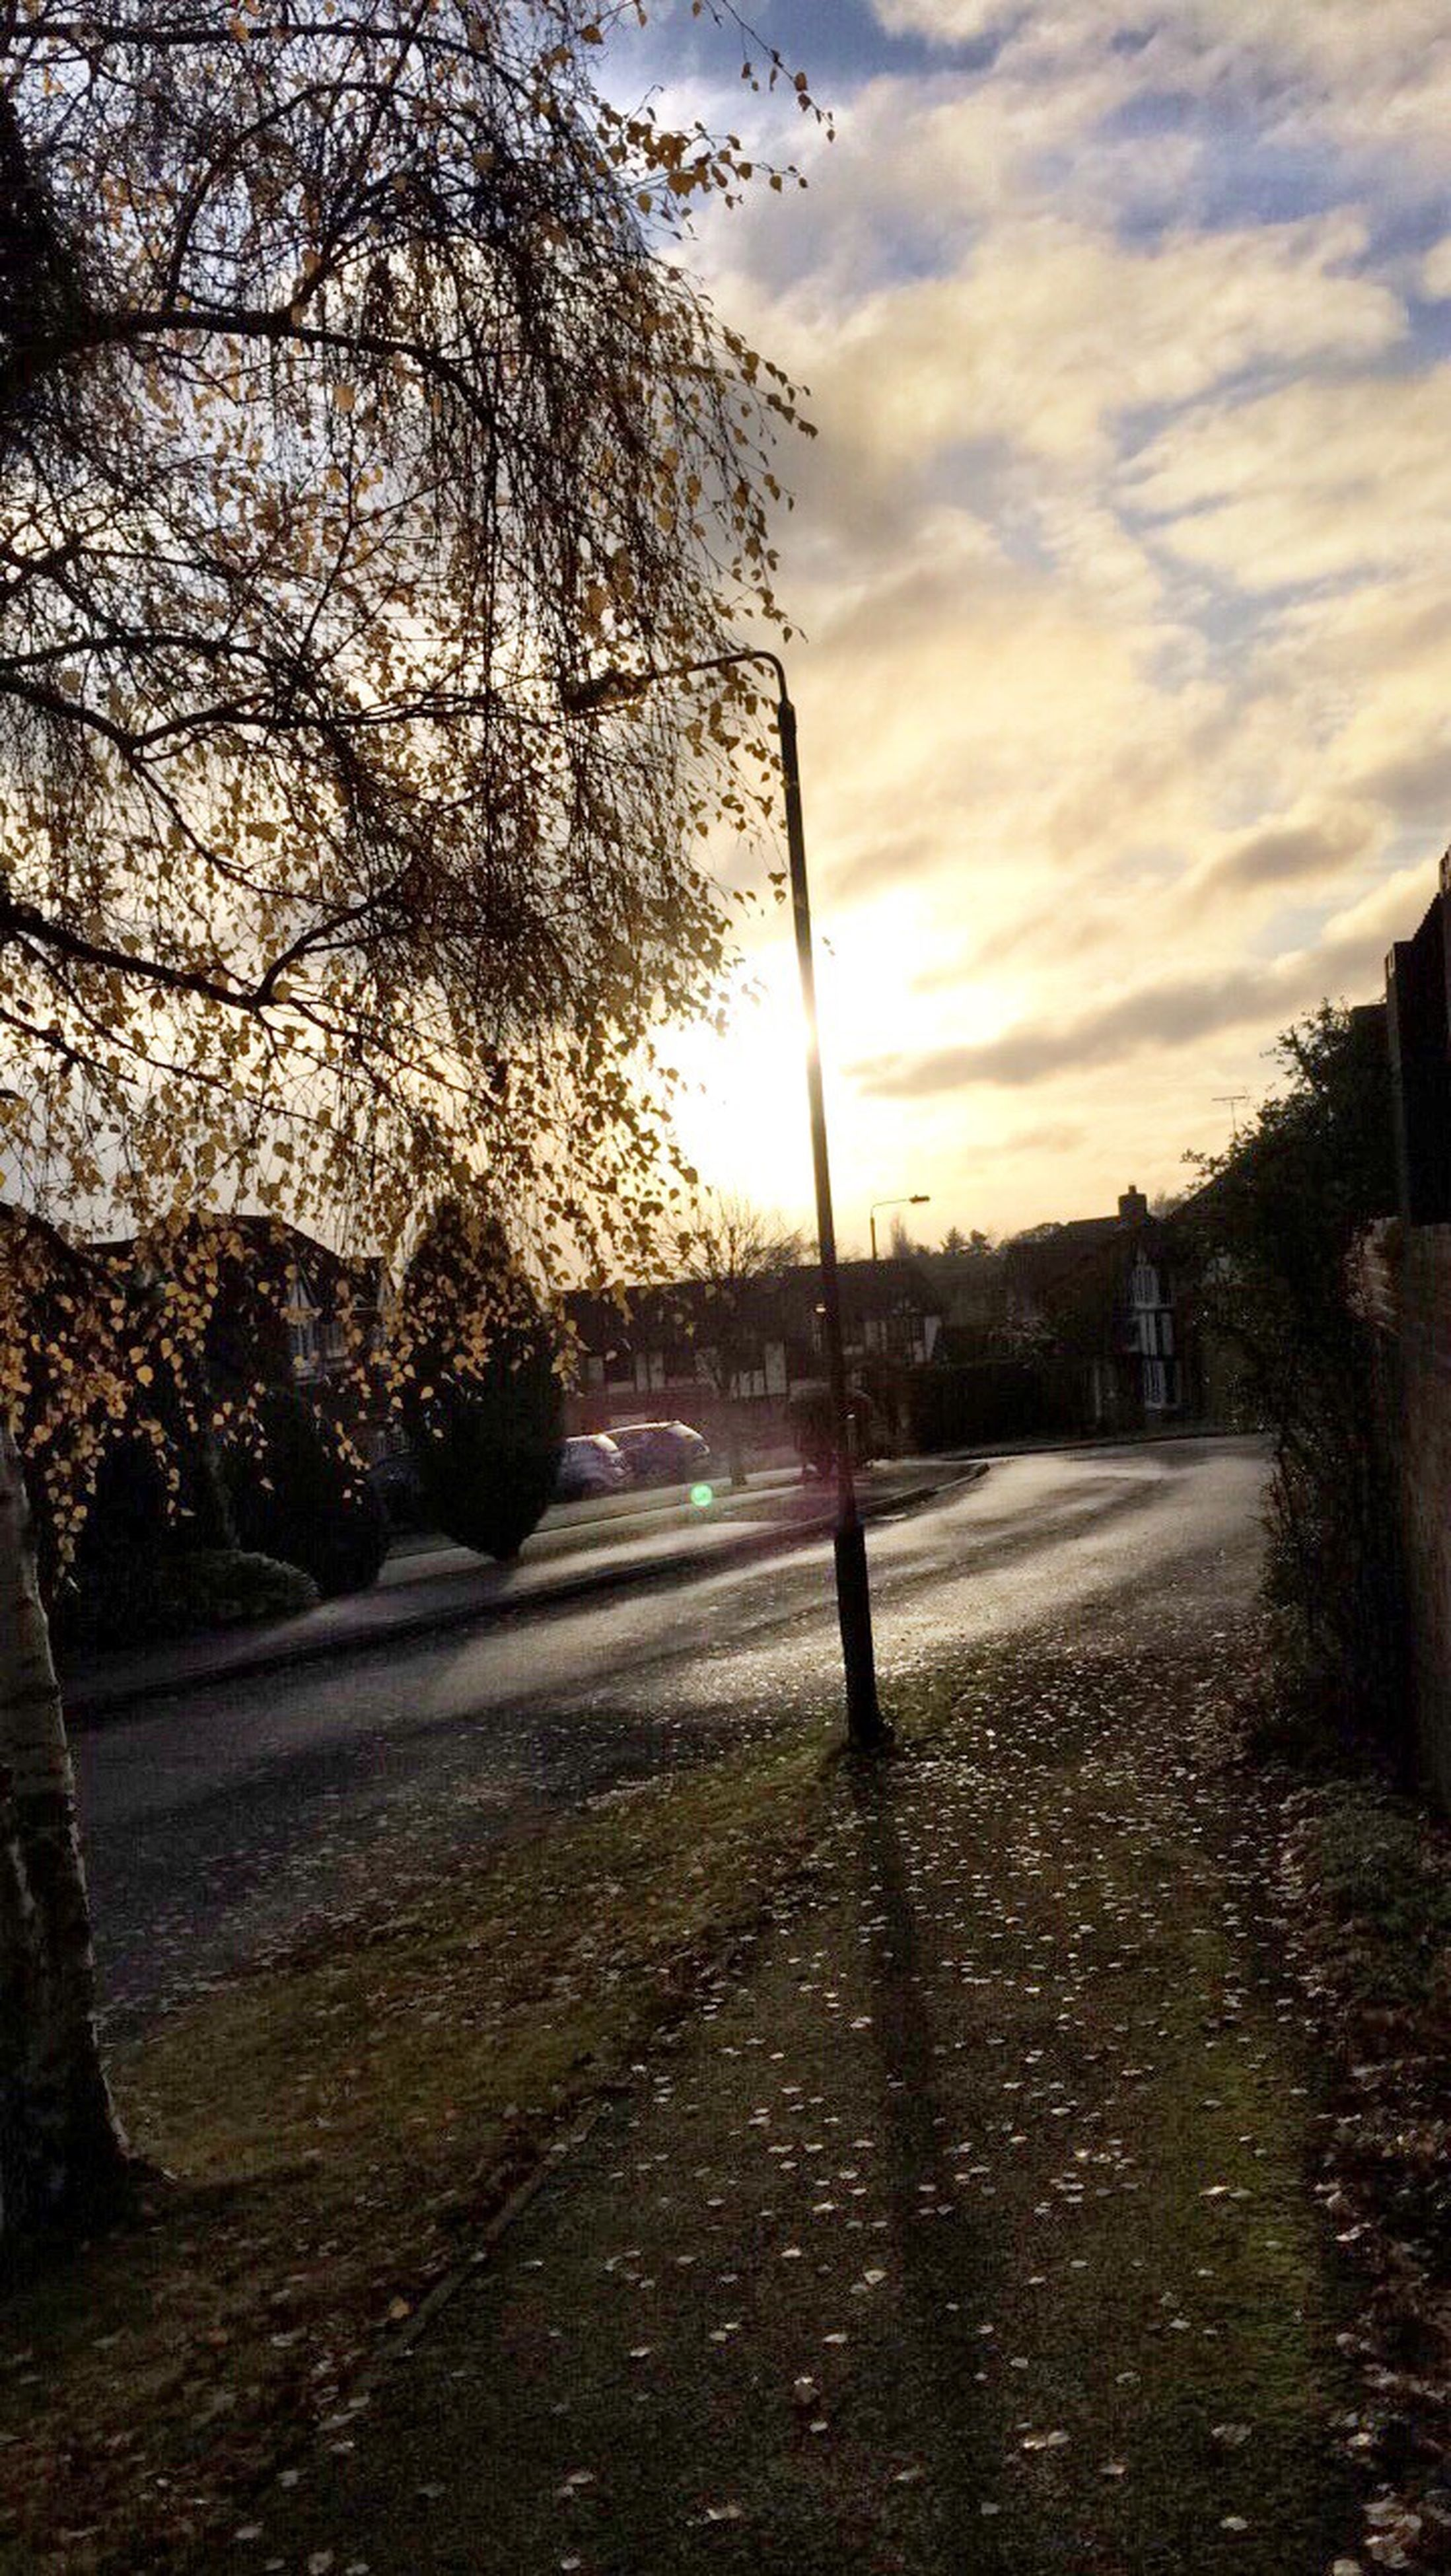 tree, sky, sunlight, cloud - sky, nature, sunset, outdoors, road, no people, beauty in nature, day